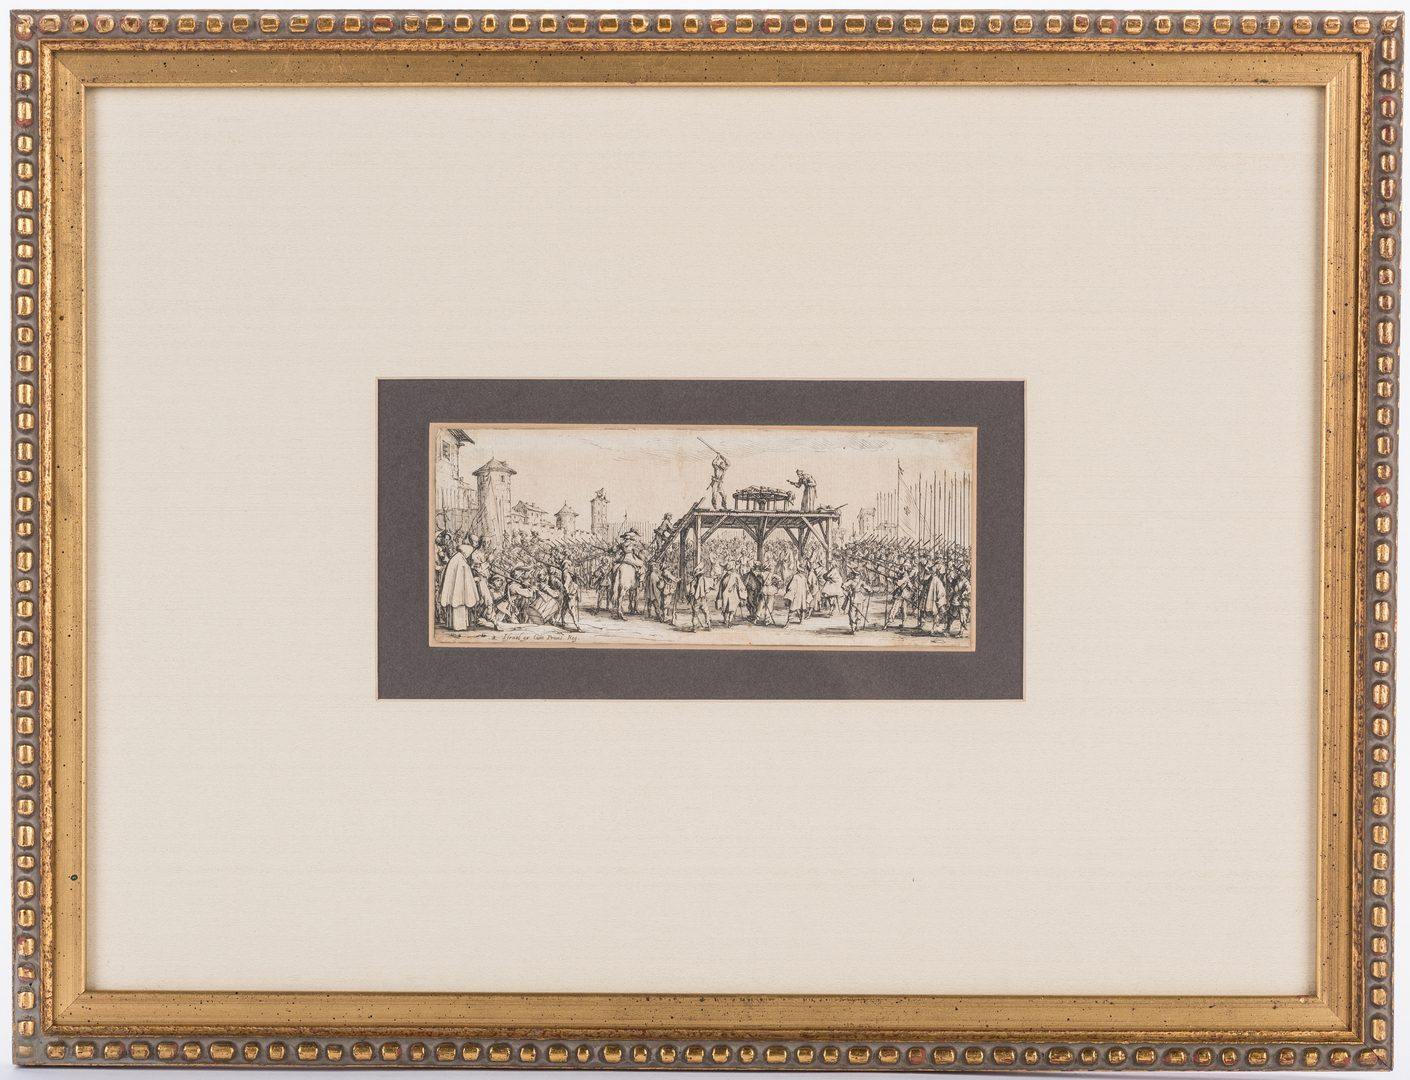 Lot 313: 3 early works on paper, Henriet, Earlom